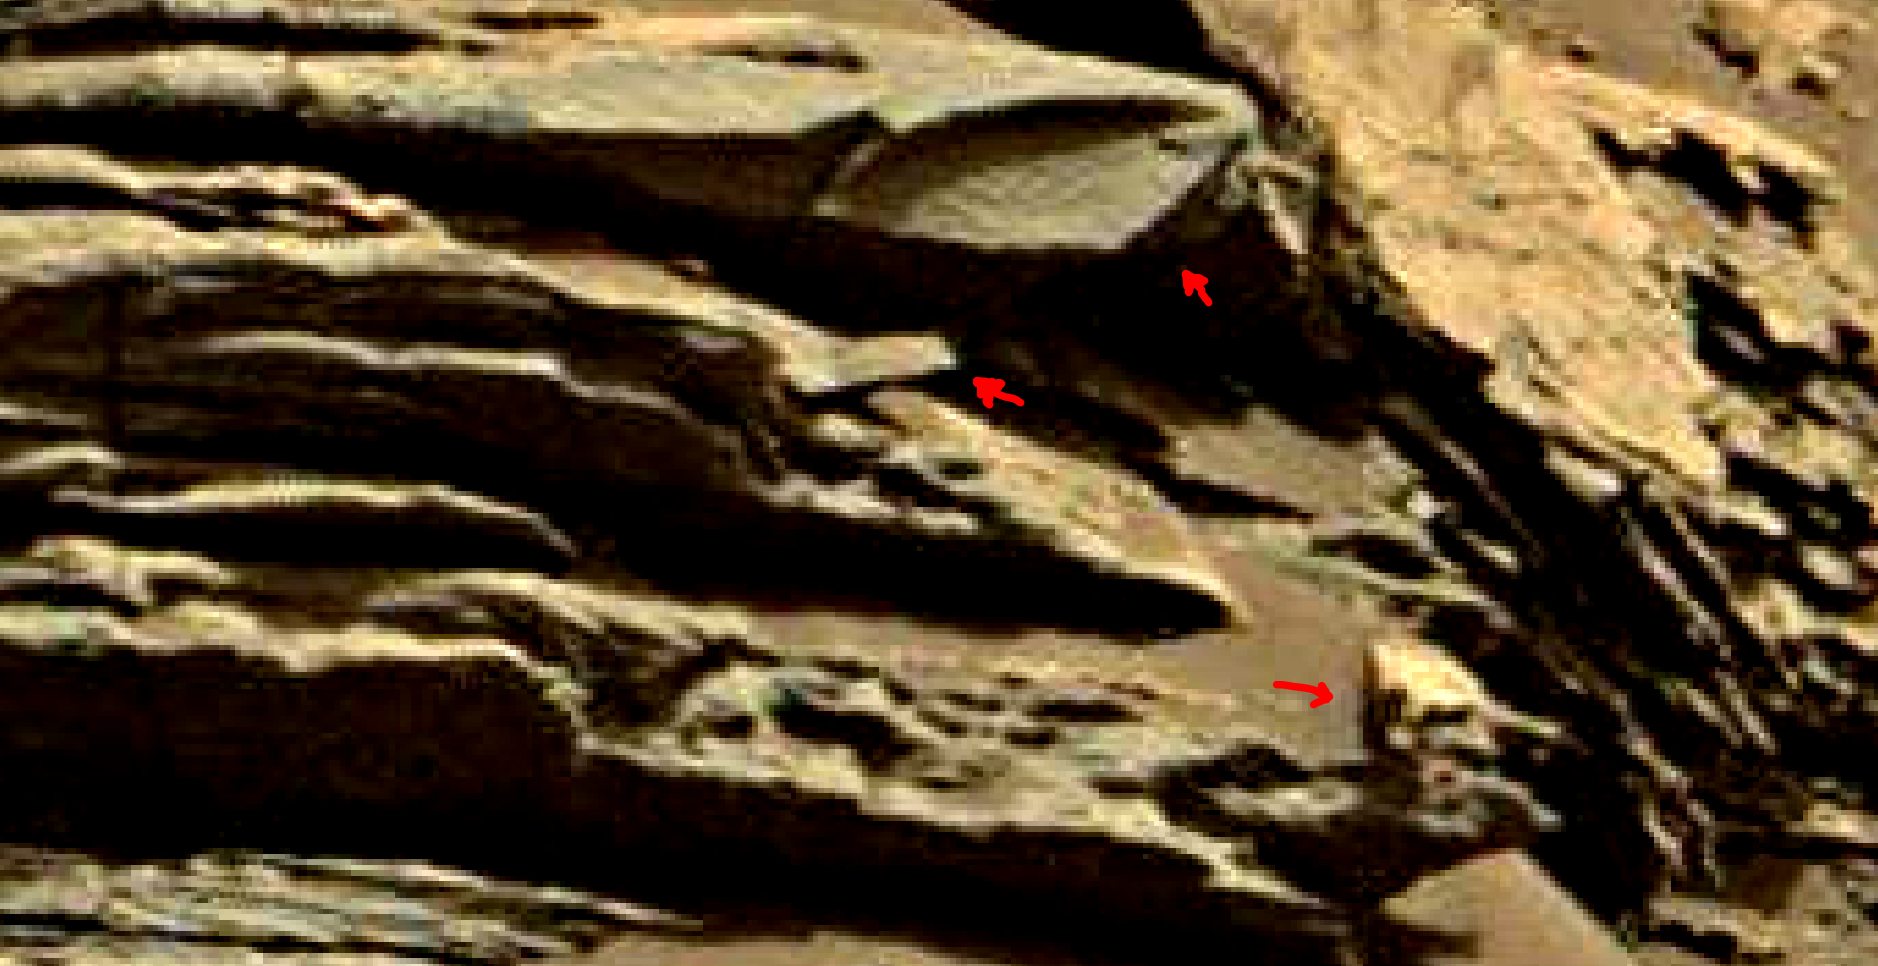 mars-sol-1450-anomaly-artifacts-3b1-was-life-on-mars